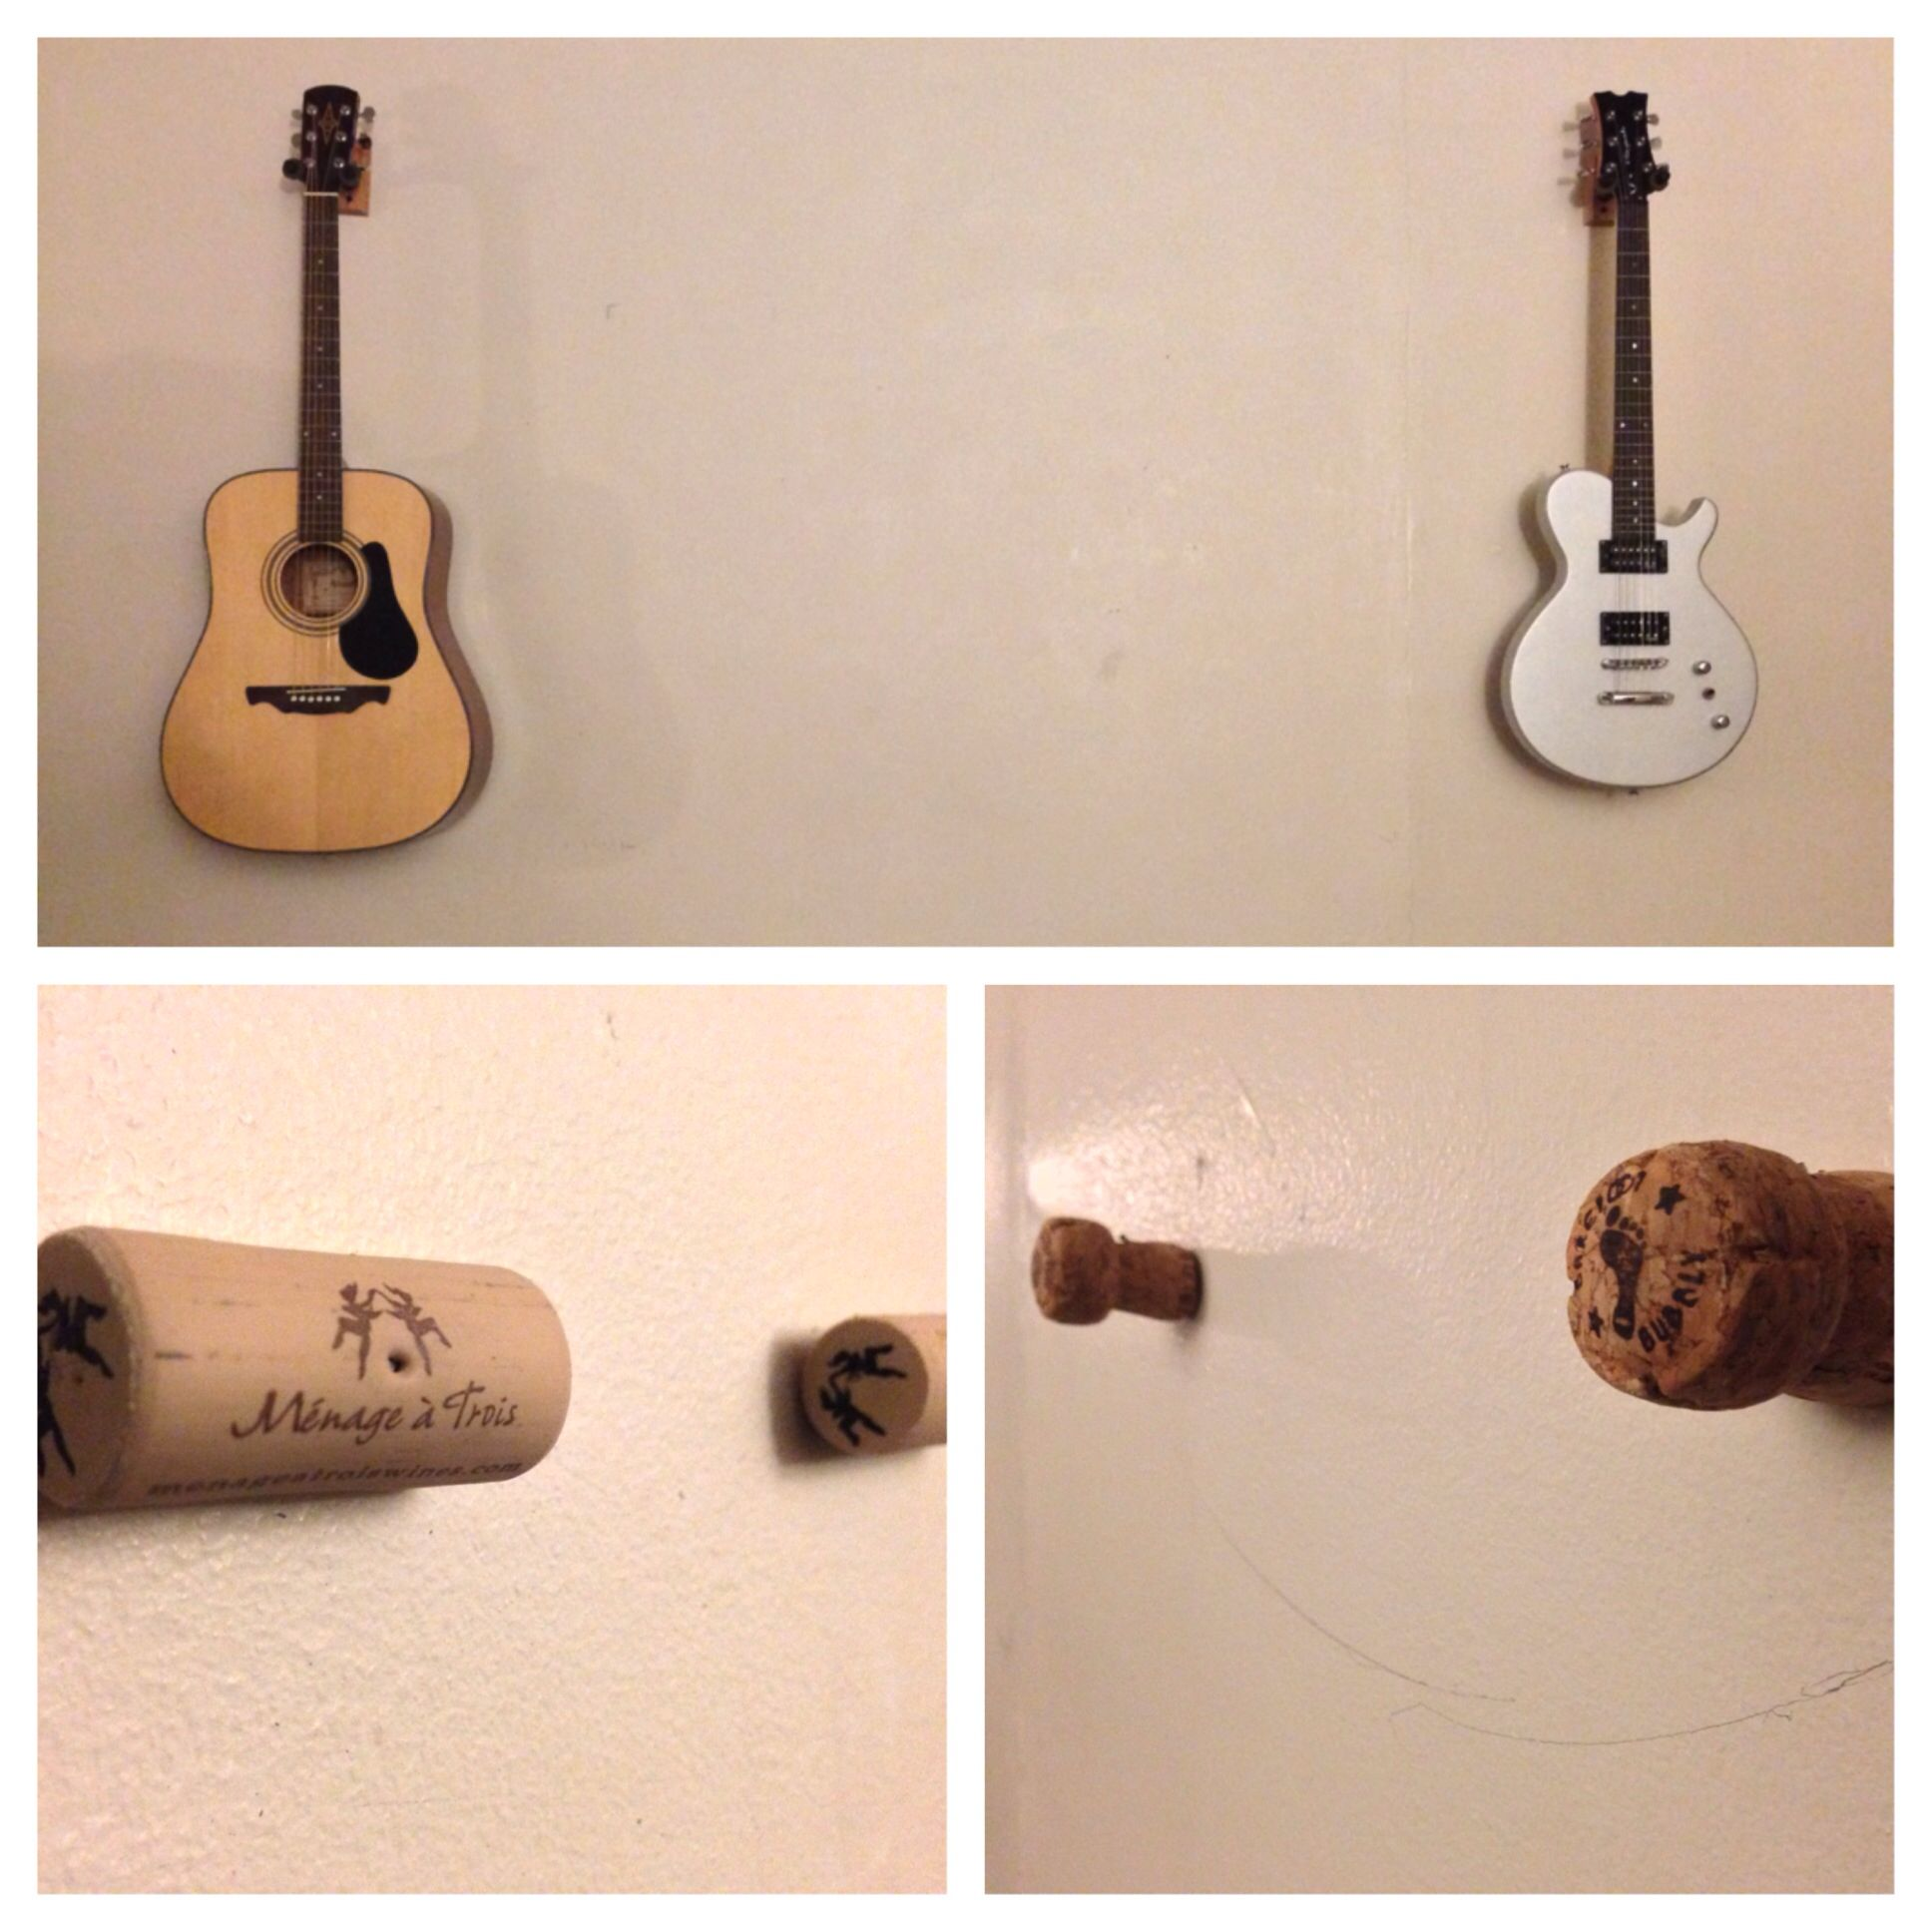 Diy guitar hanger protection nailed two corks to wall to